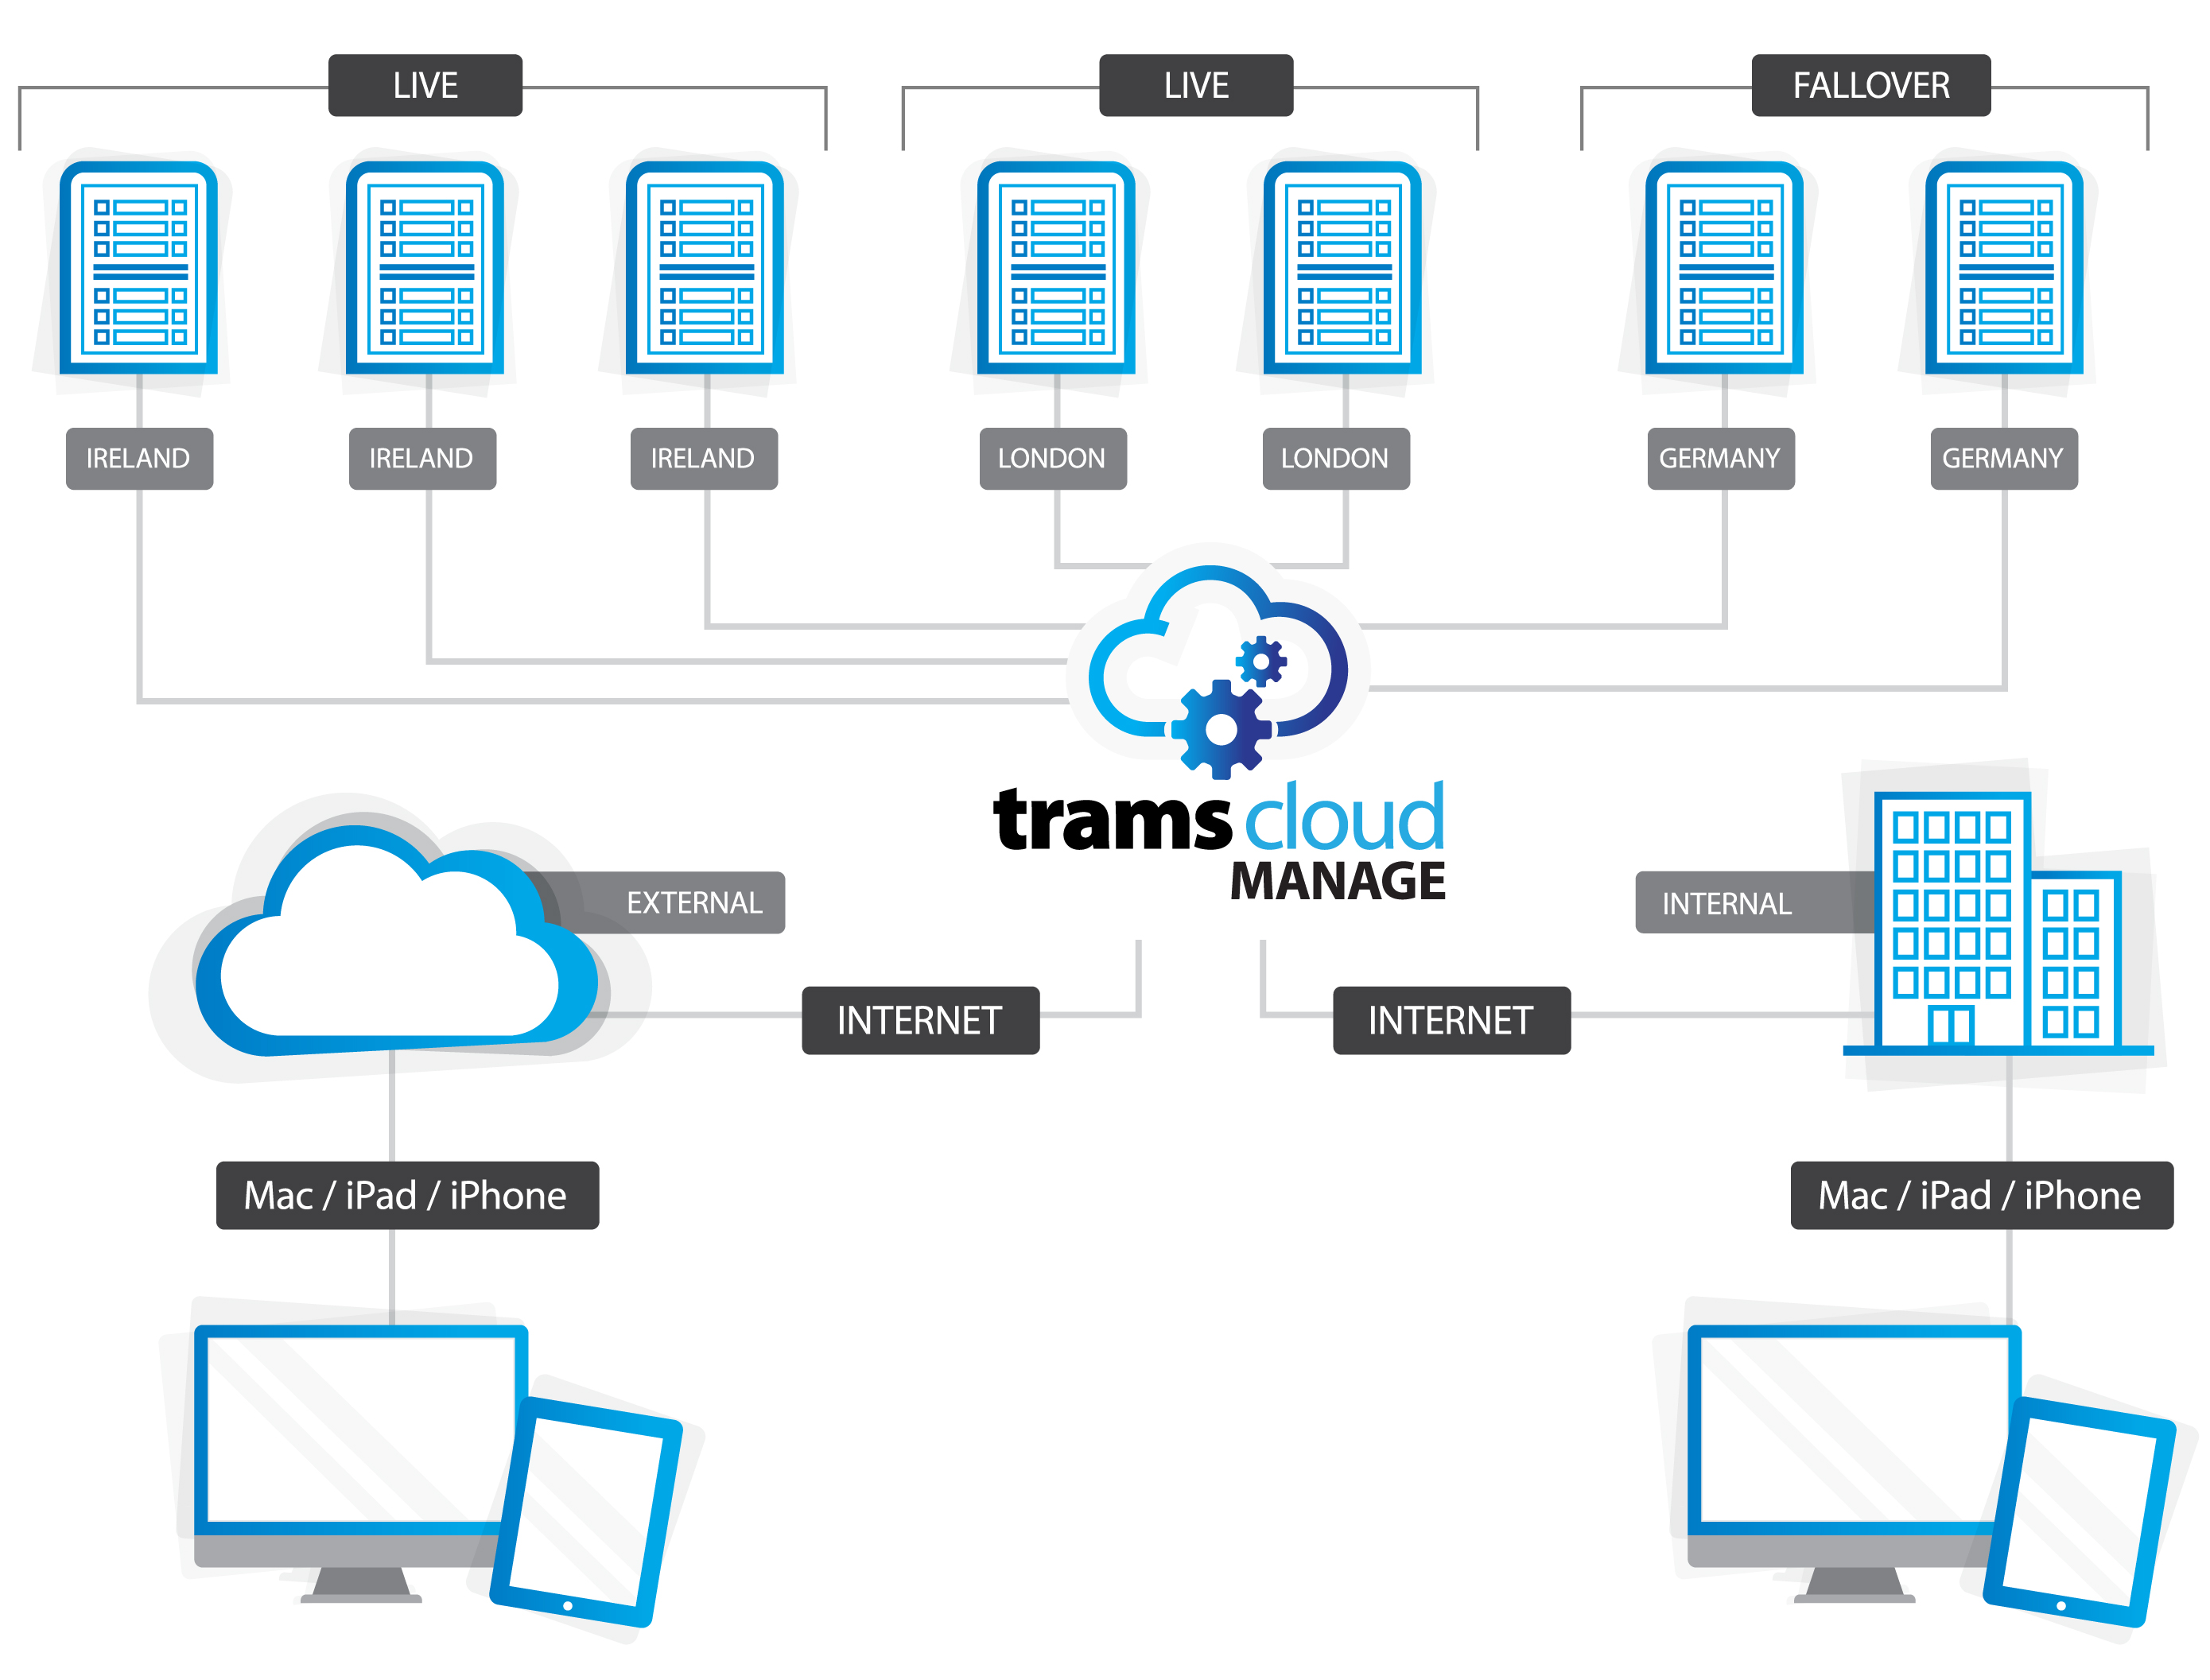 TramsCloud Manage Flow Chart